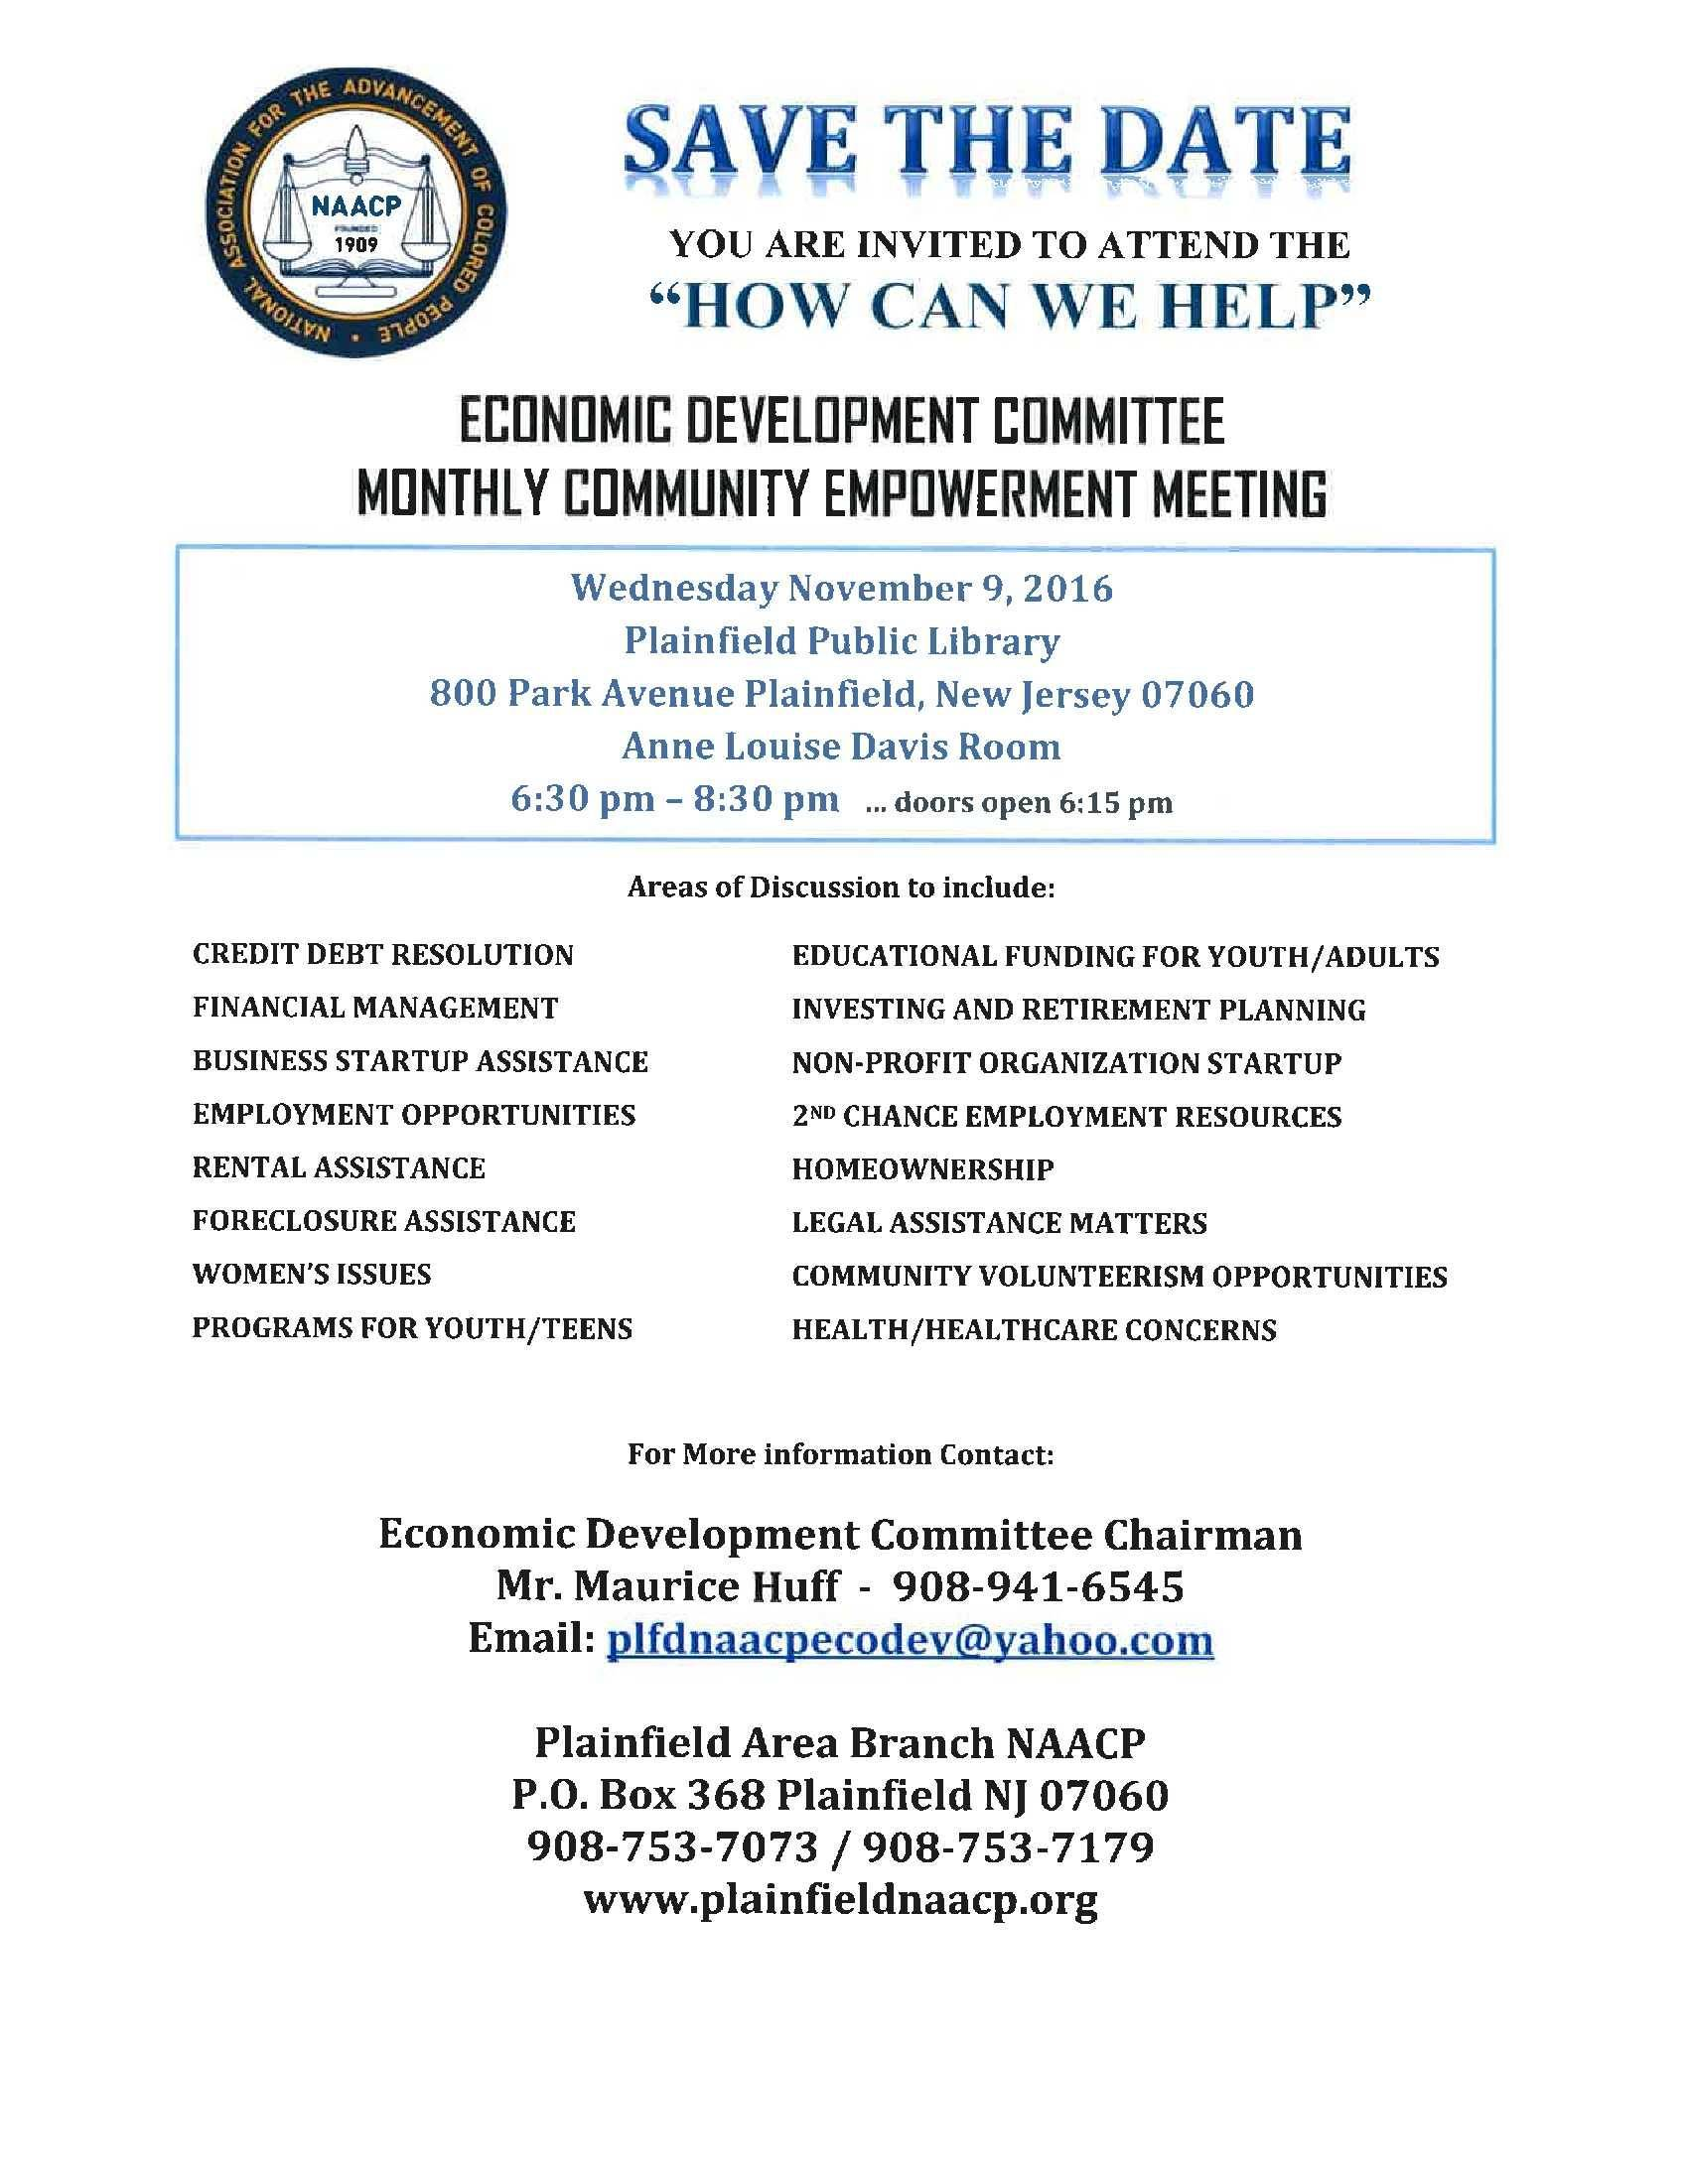 d424f79cef1e8b6778a3_Plainfield_NAACP_Meeting_Flyer.jpg